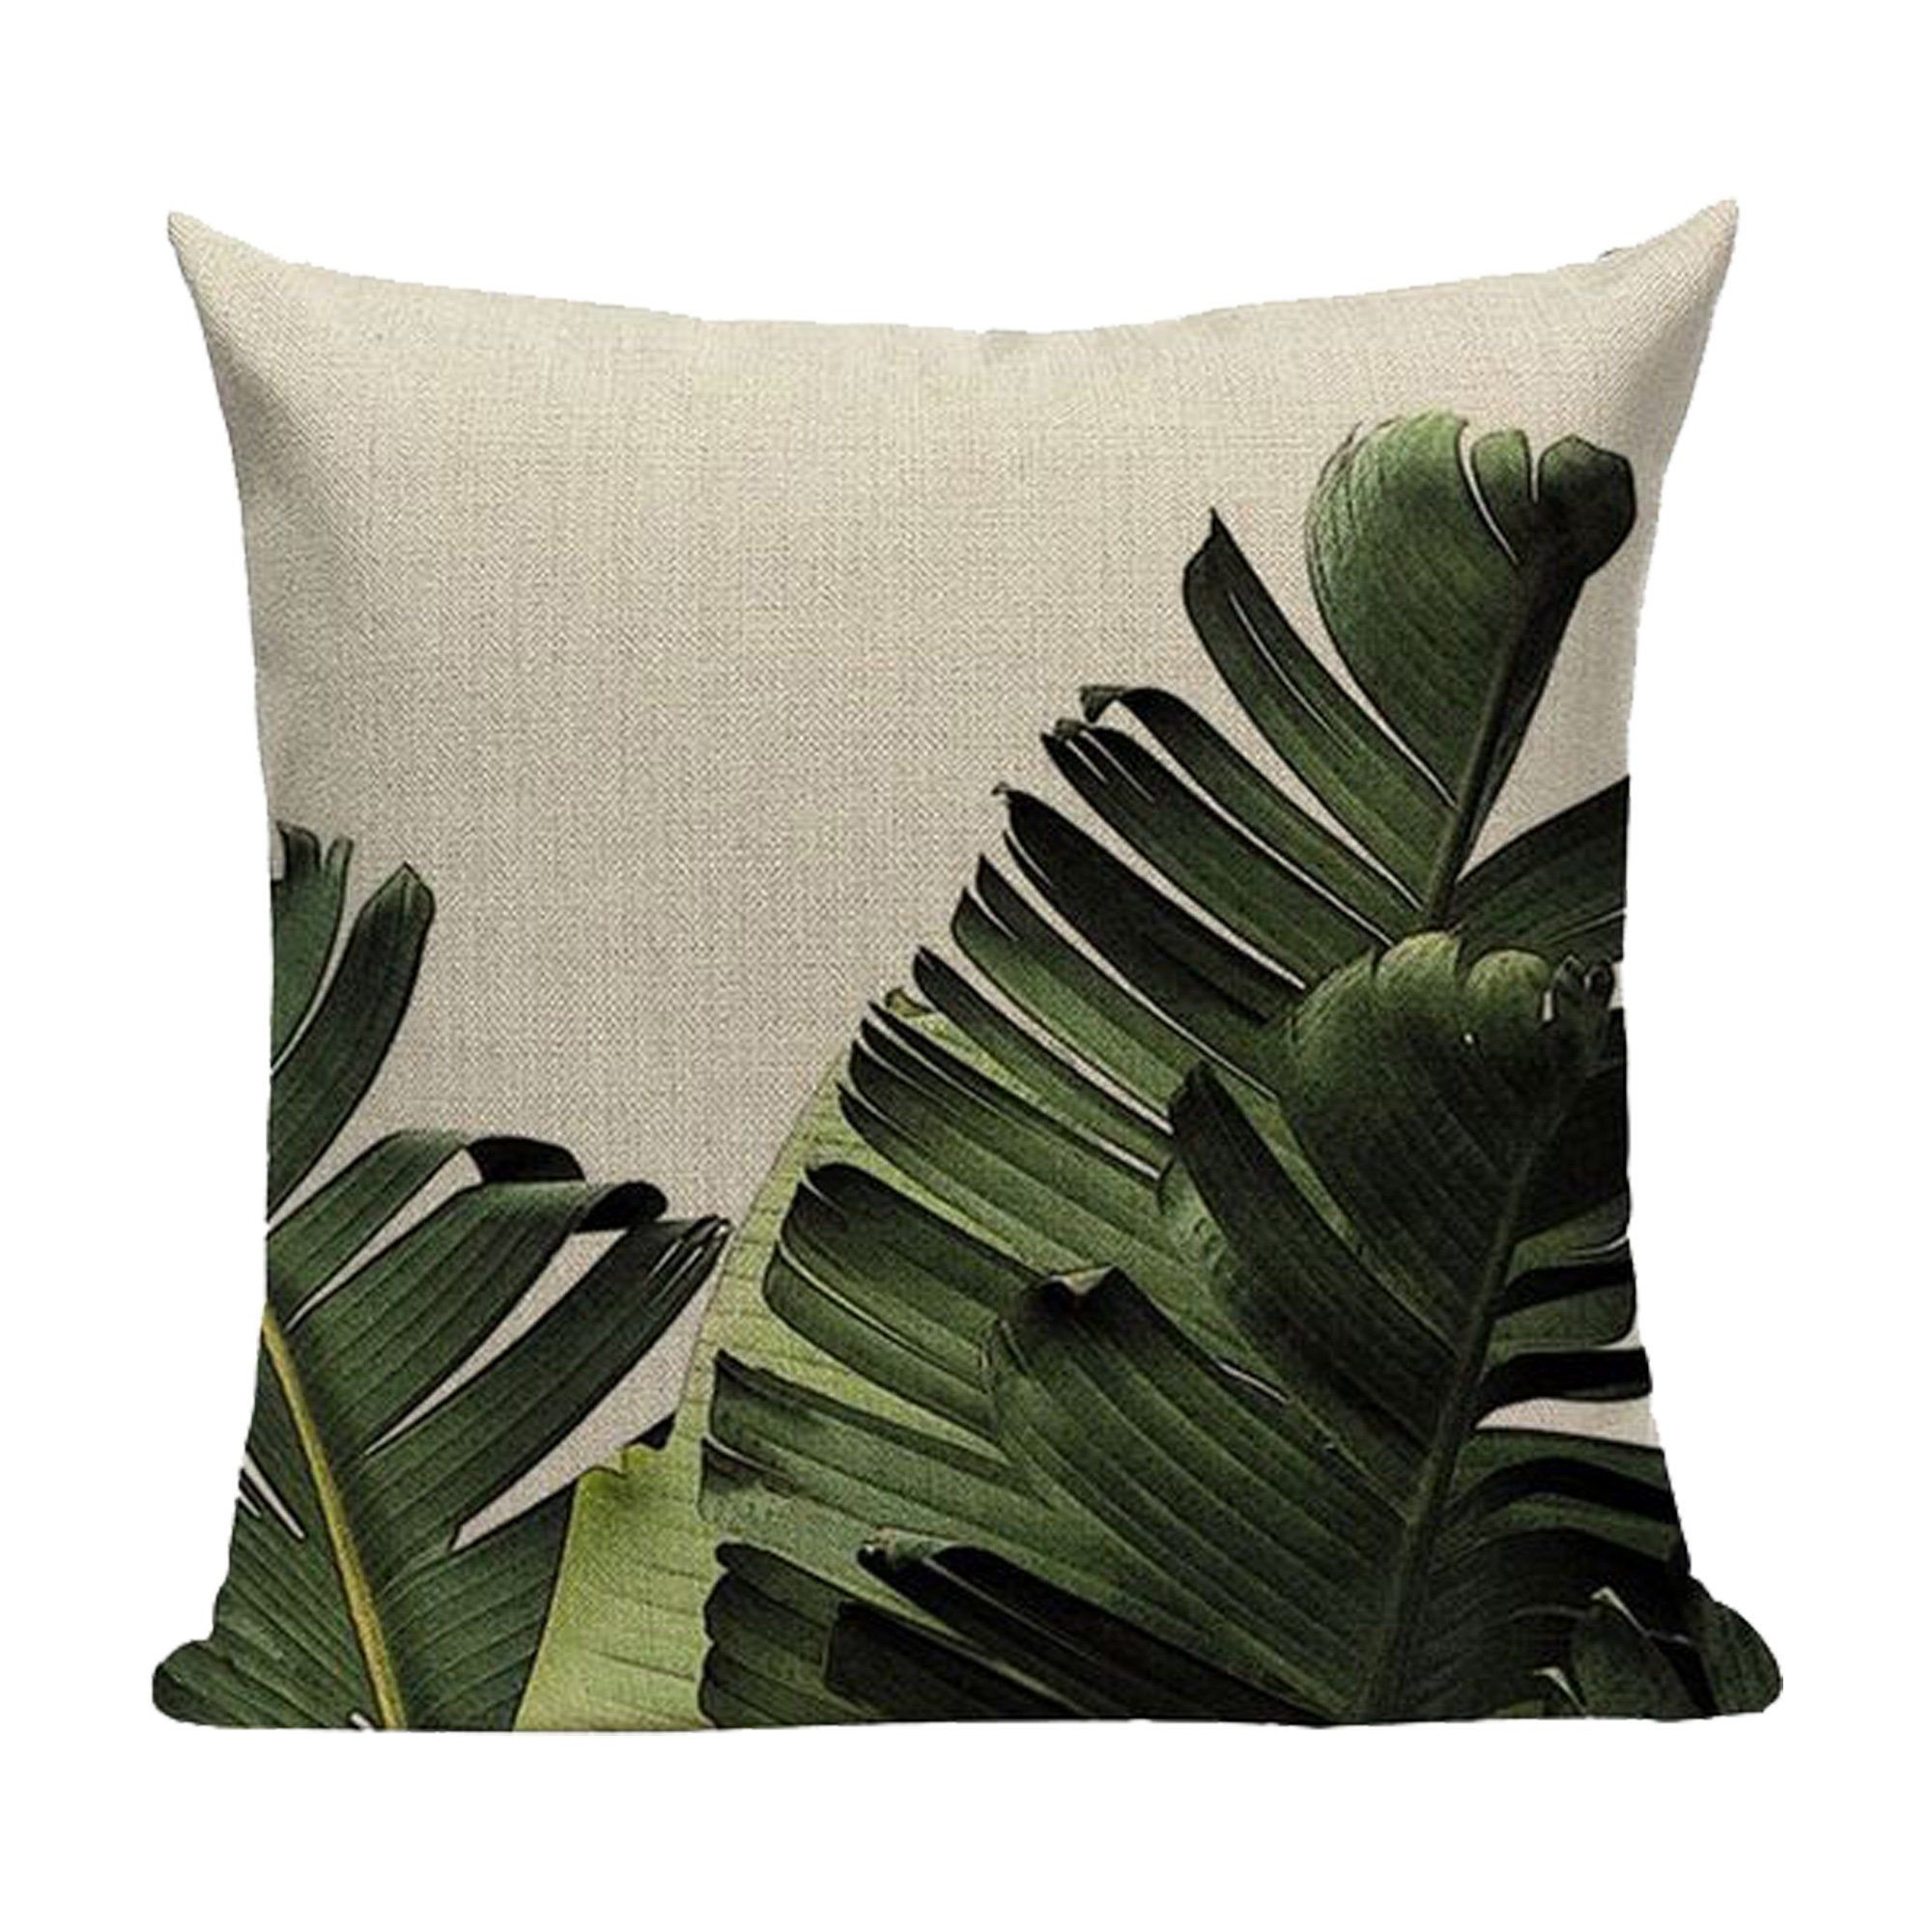 Plant Pattern Patio Cushion Covers Printed on Linen Cotton   Etsy ...